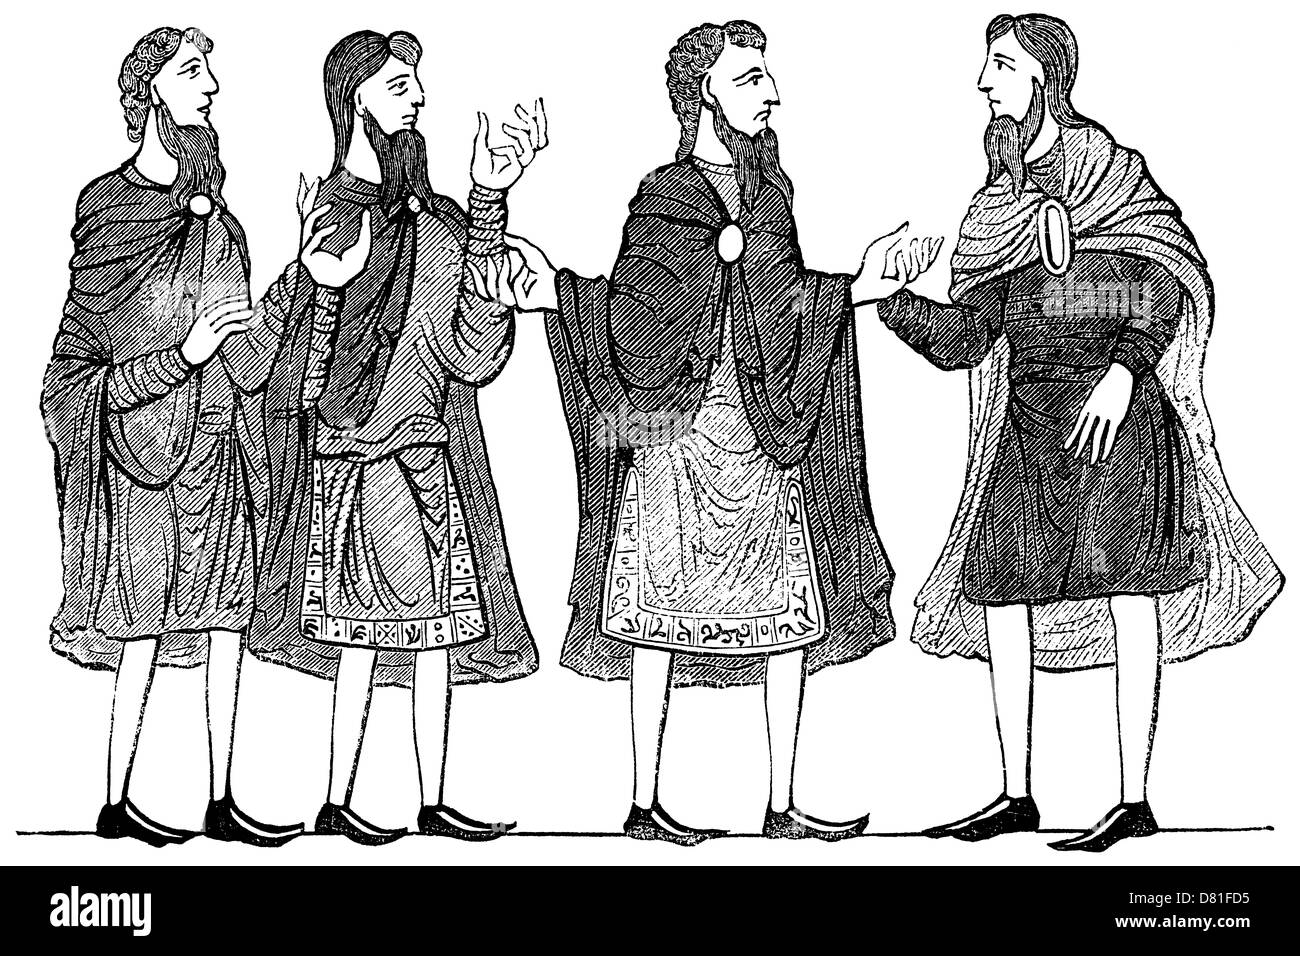 Saxon cloaks, and plain and embroidered tunics; vintage woodcut based on medieval manuscript decoration. - Stock Image